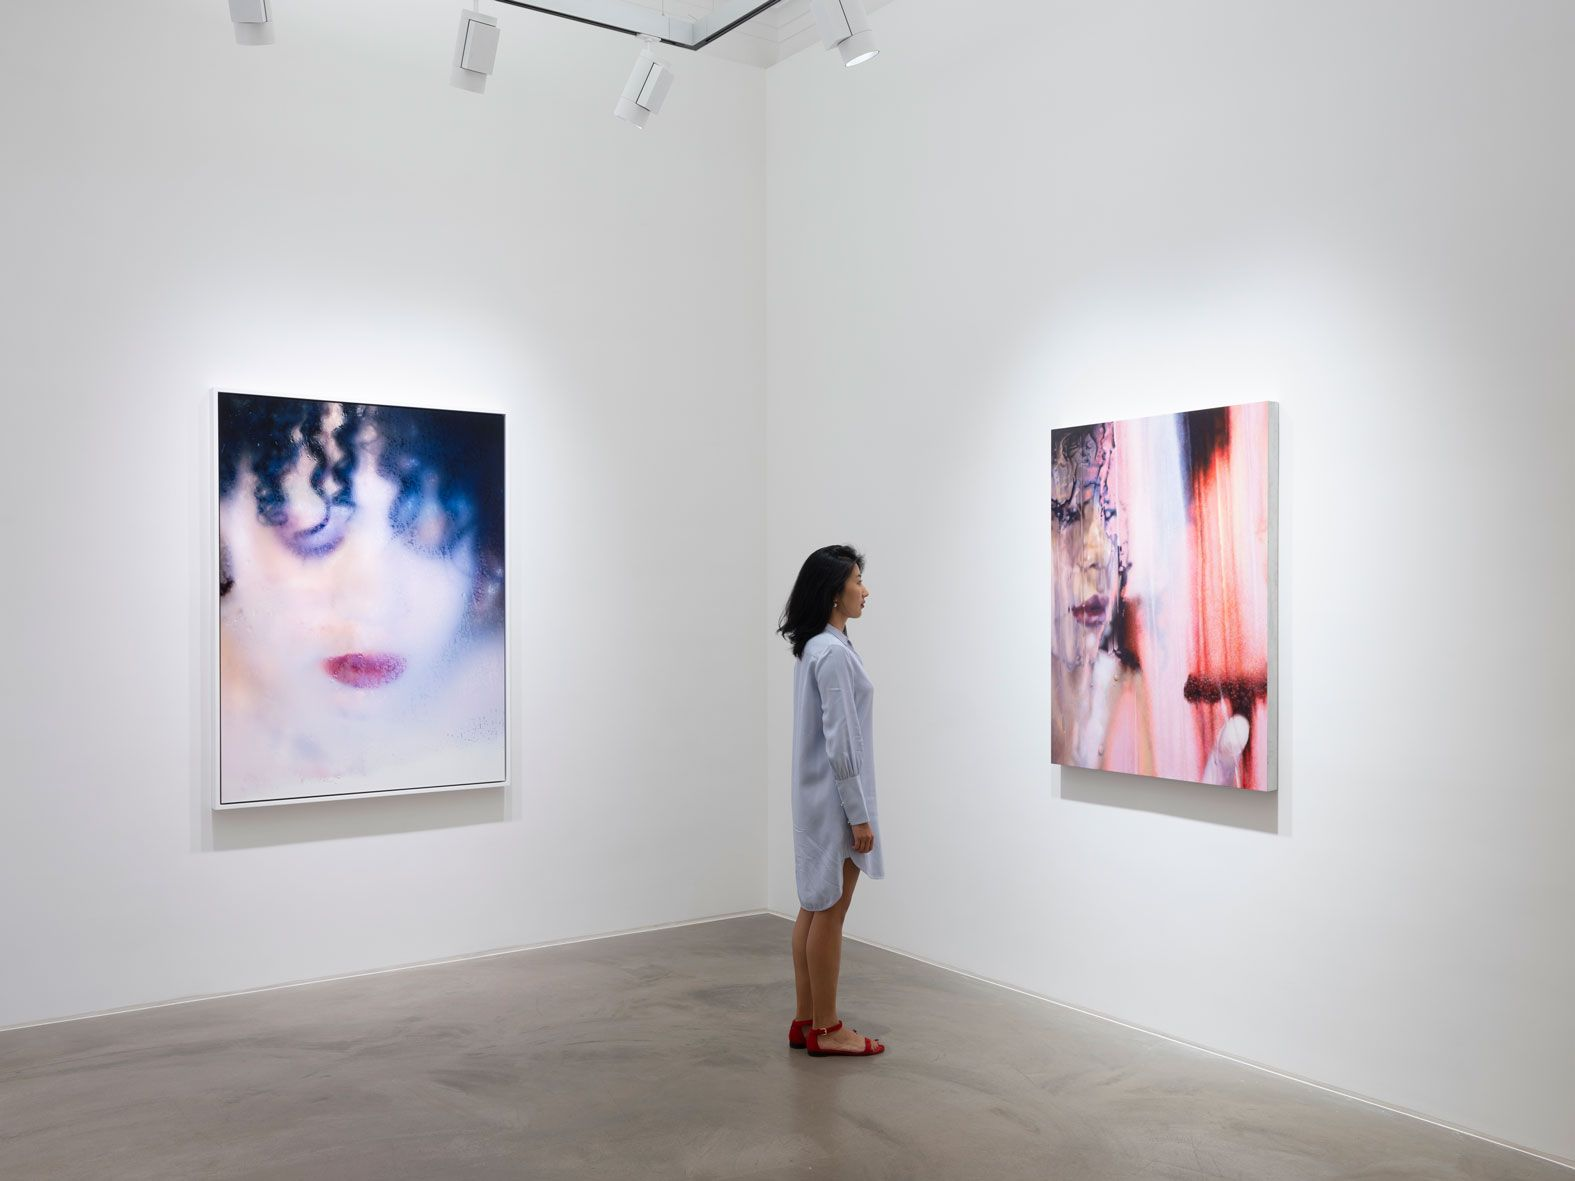 MARILYN MINTER, Installation view